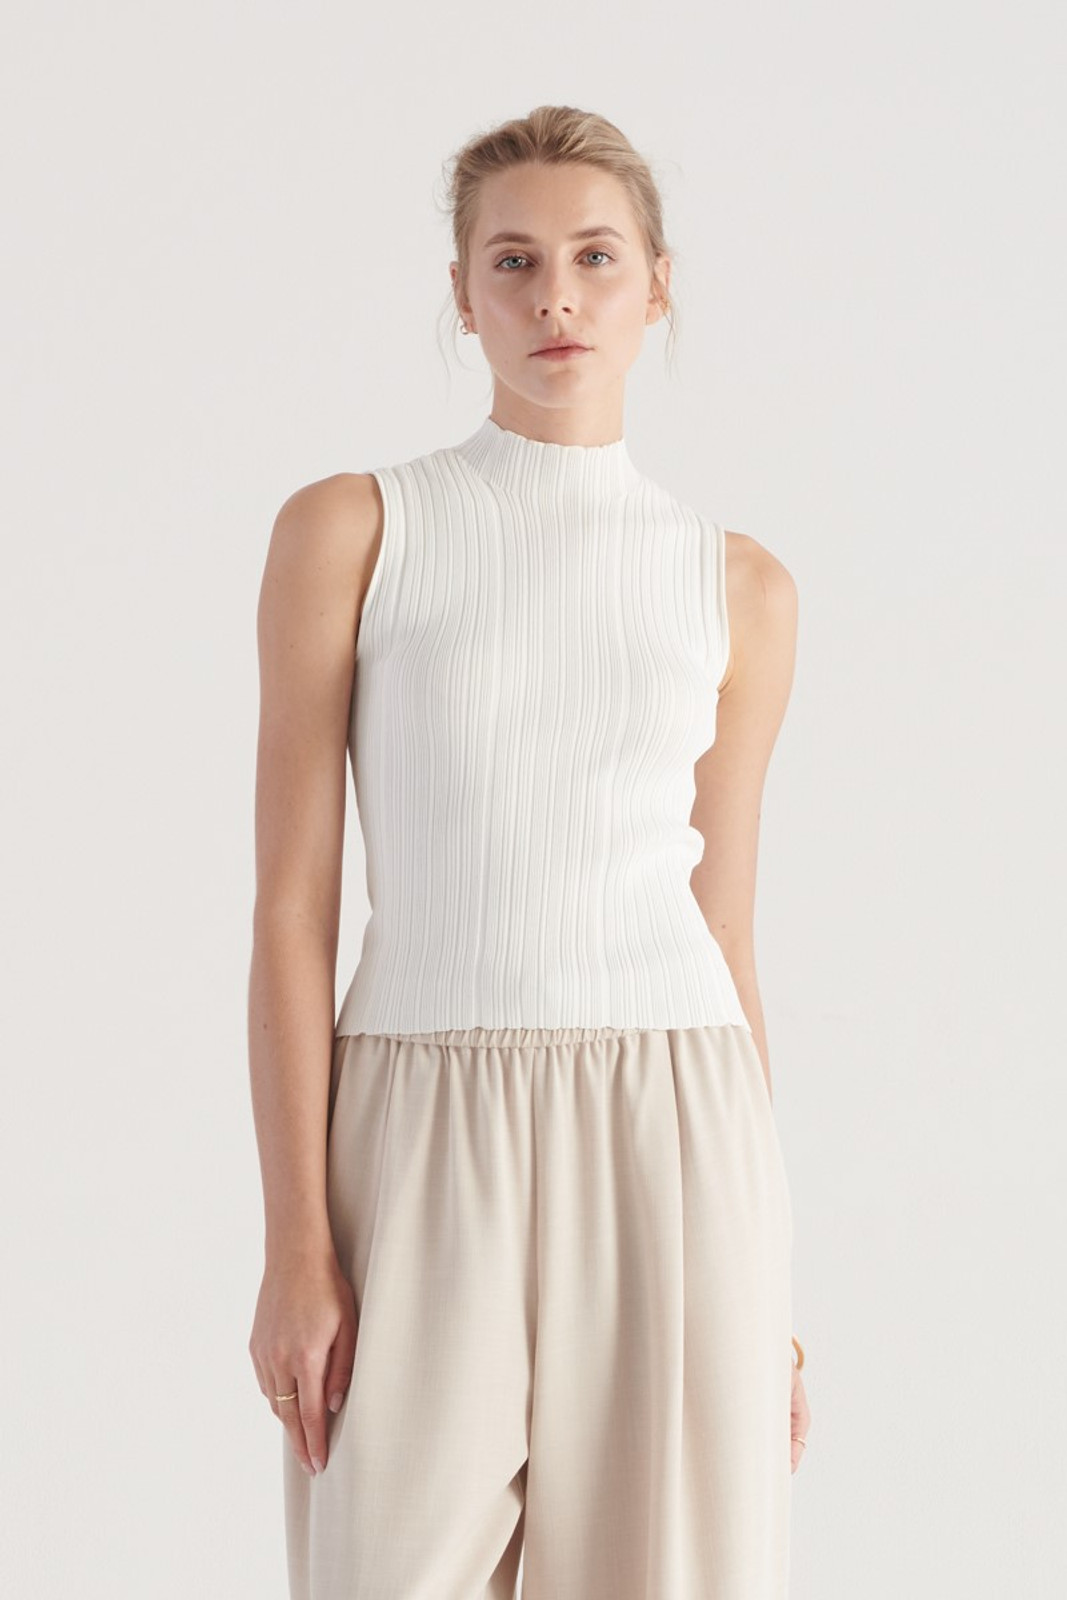 Elka Collective WOMENS White Pillar Knit Top 0